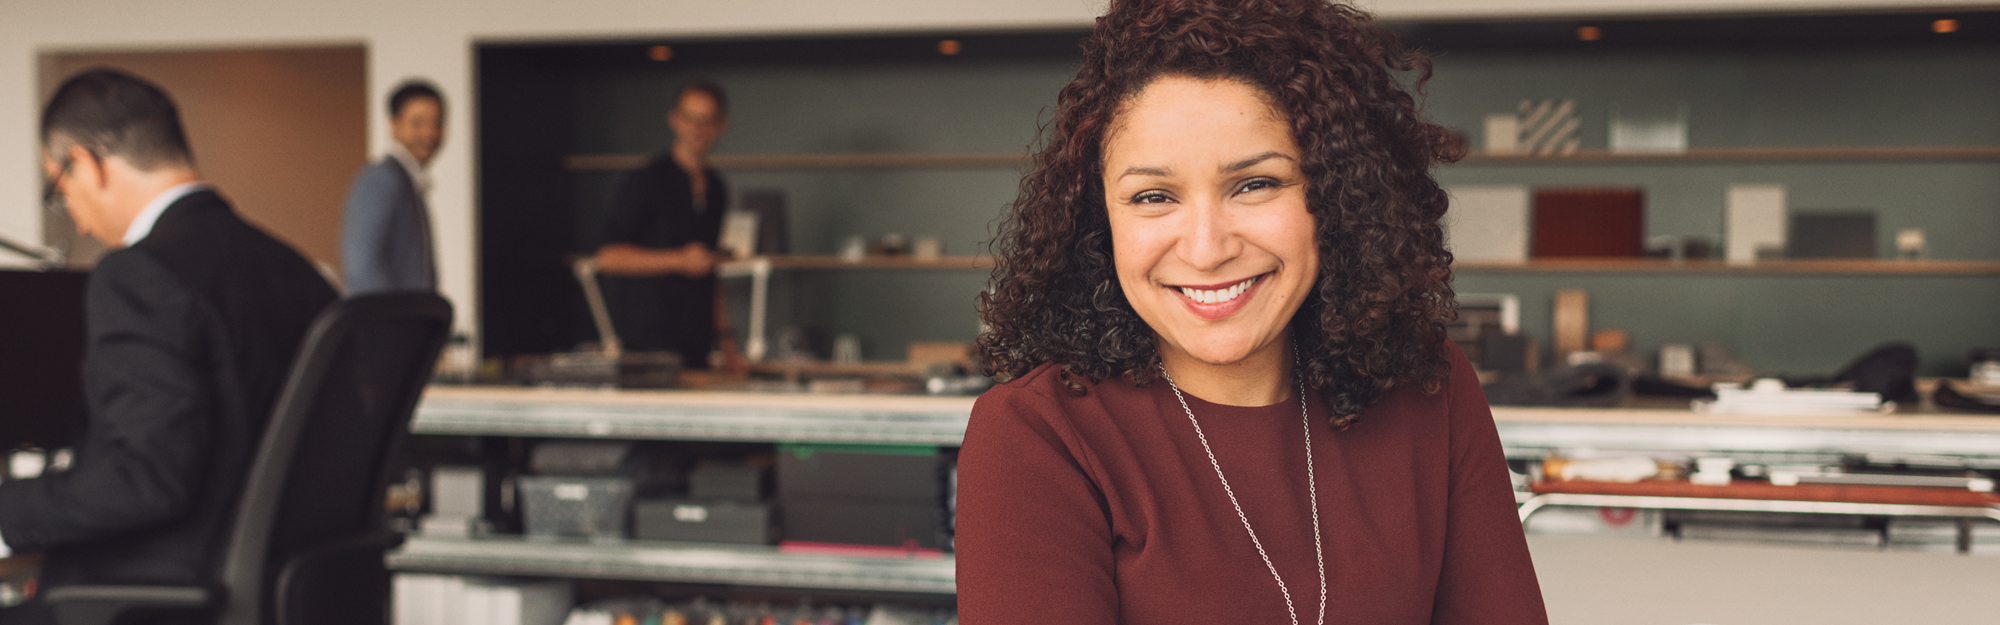 Business woman in office.